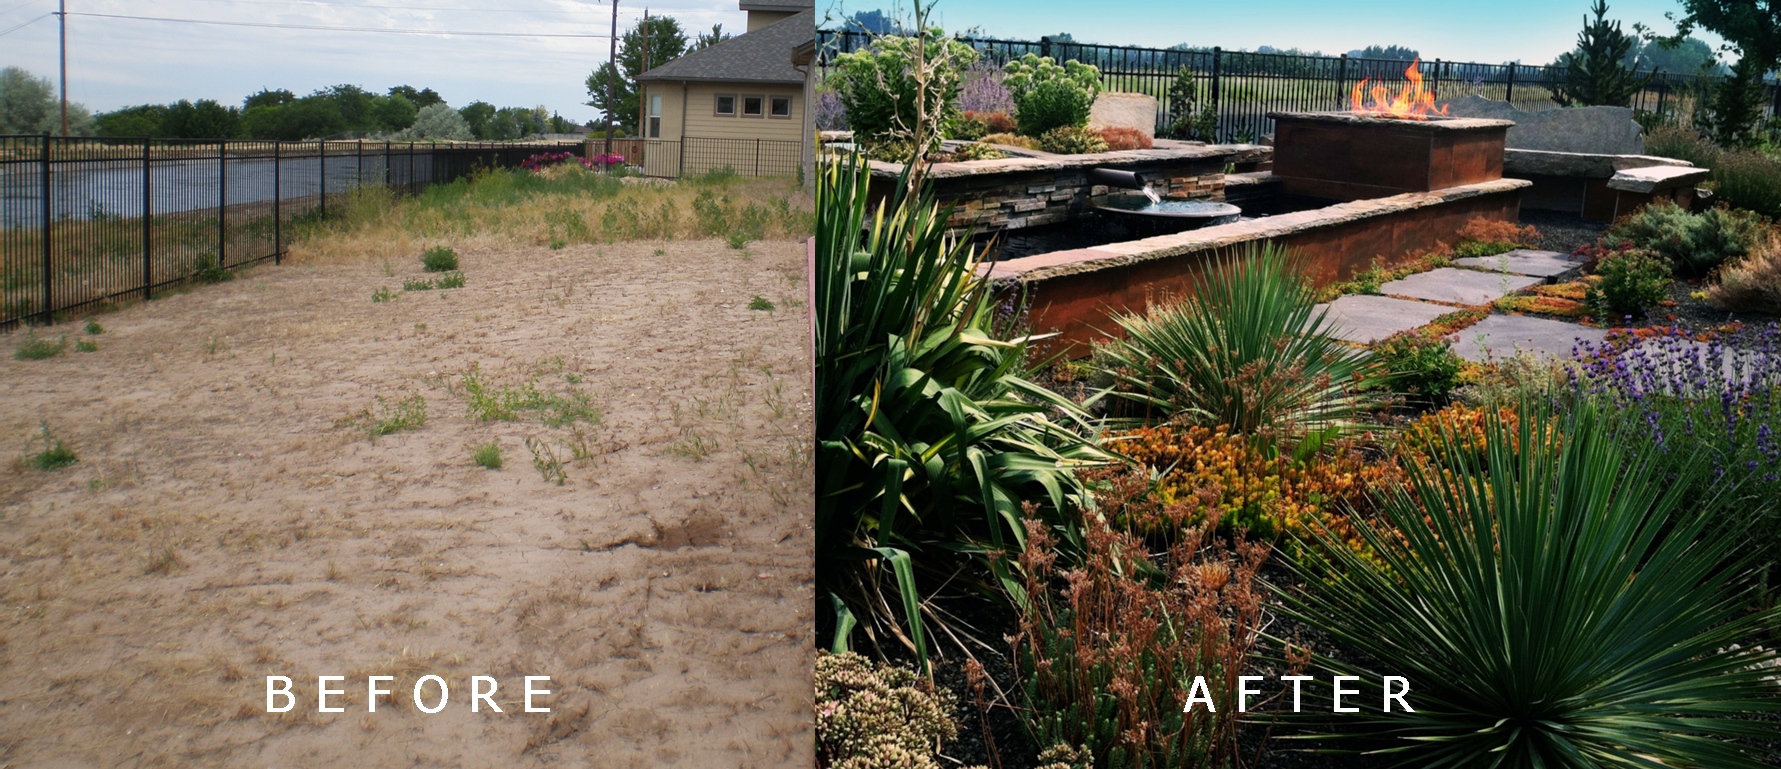 Taylor Residence: Before/After | The Garden Artist Boise, ID